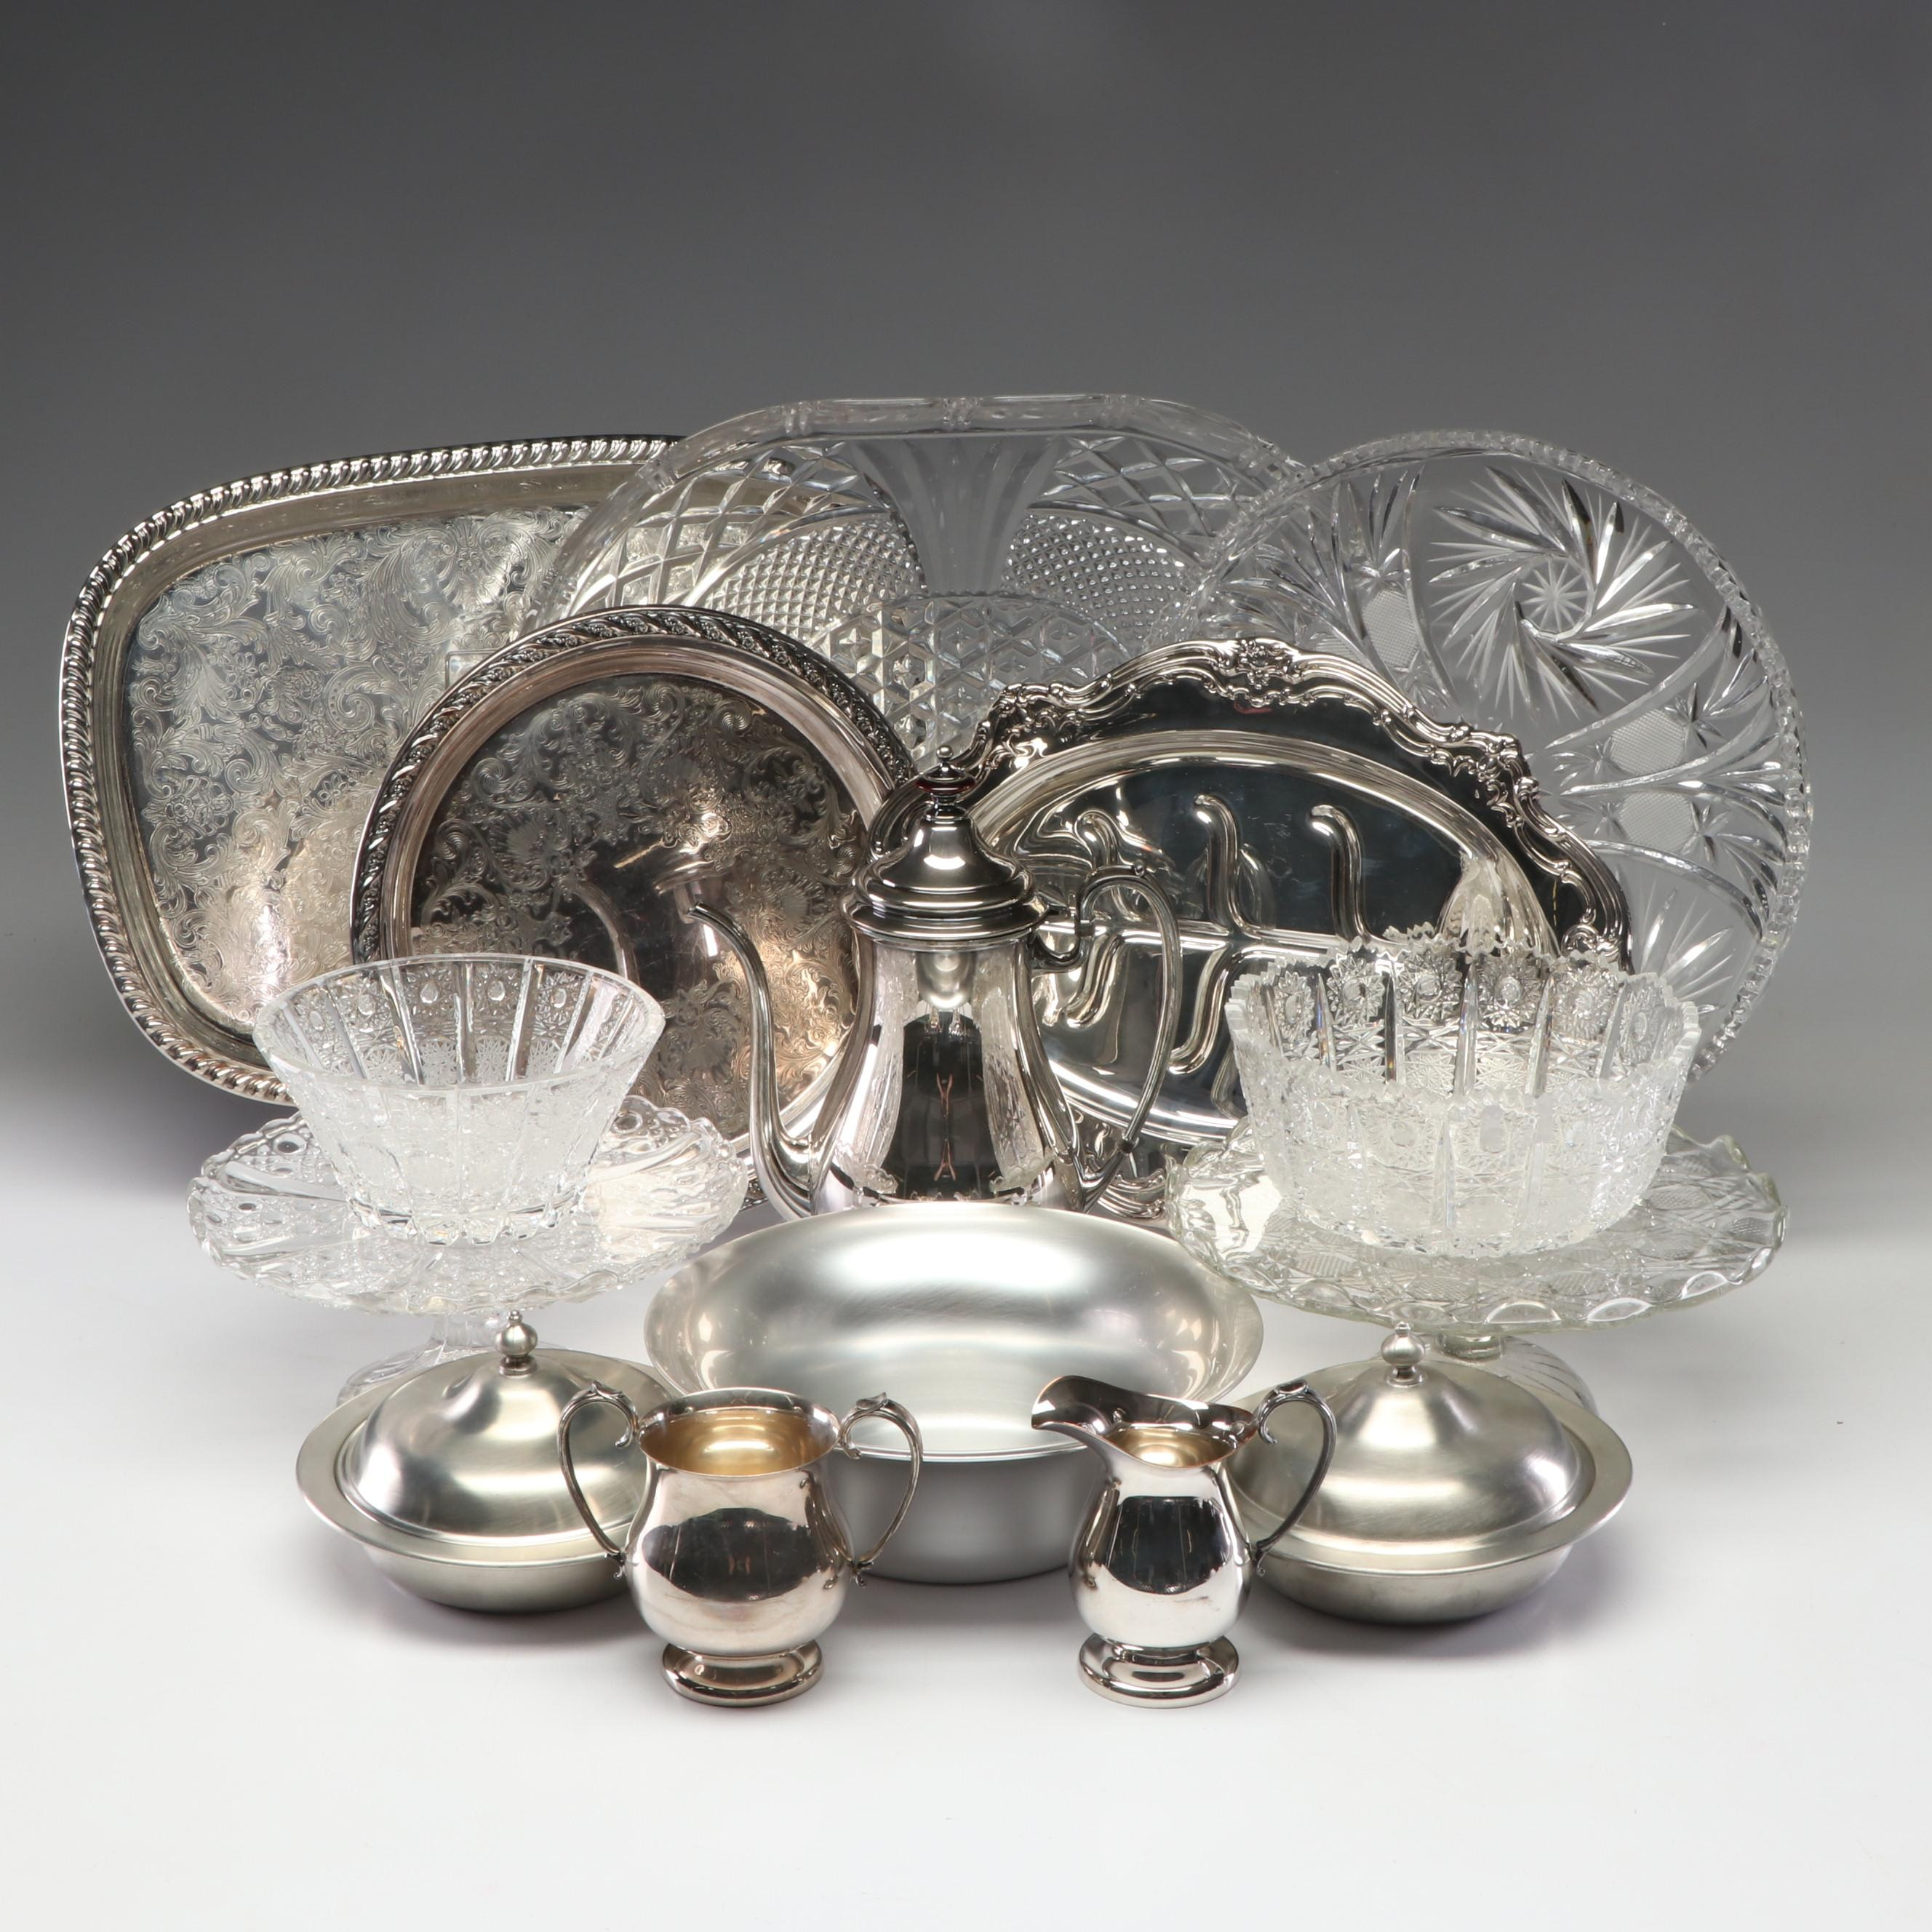 Collection of Pressed Glass Silver Plate and Pewter Serveware